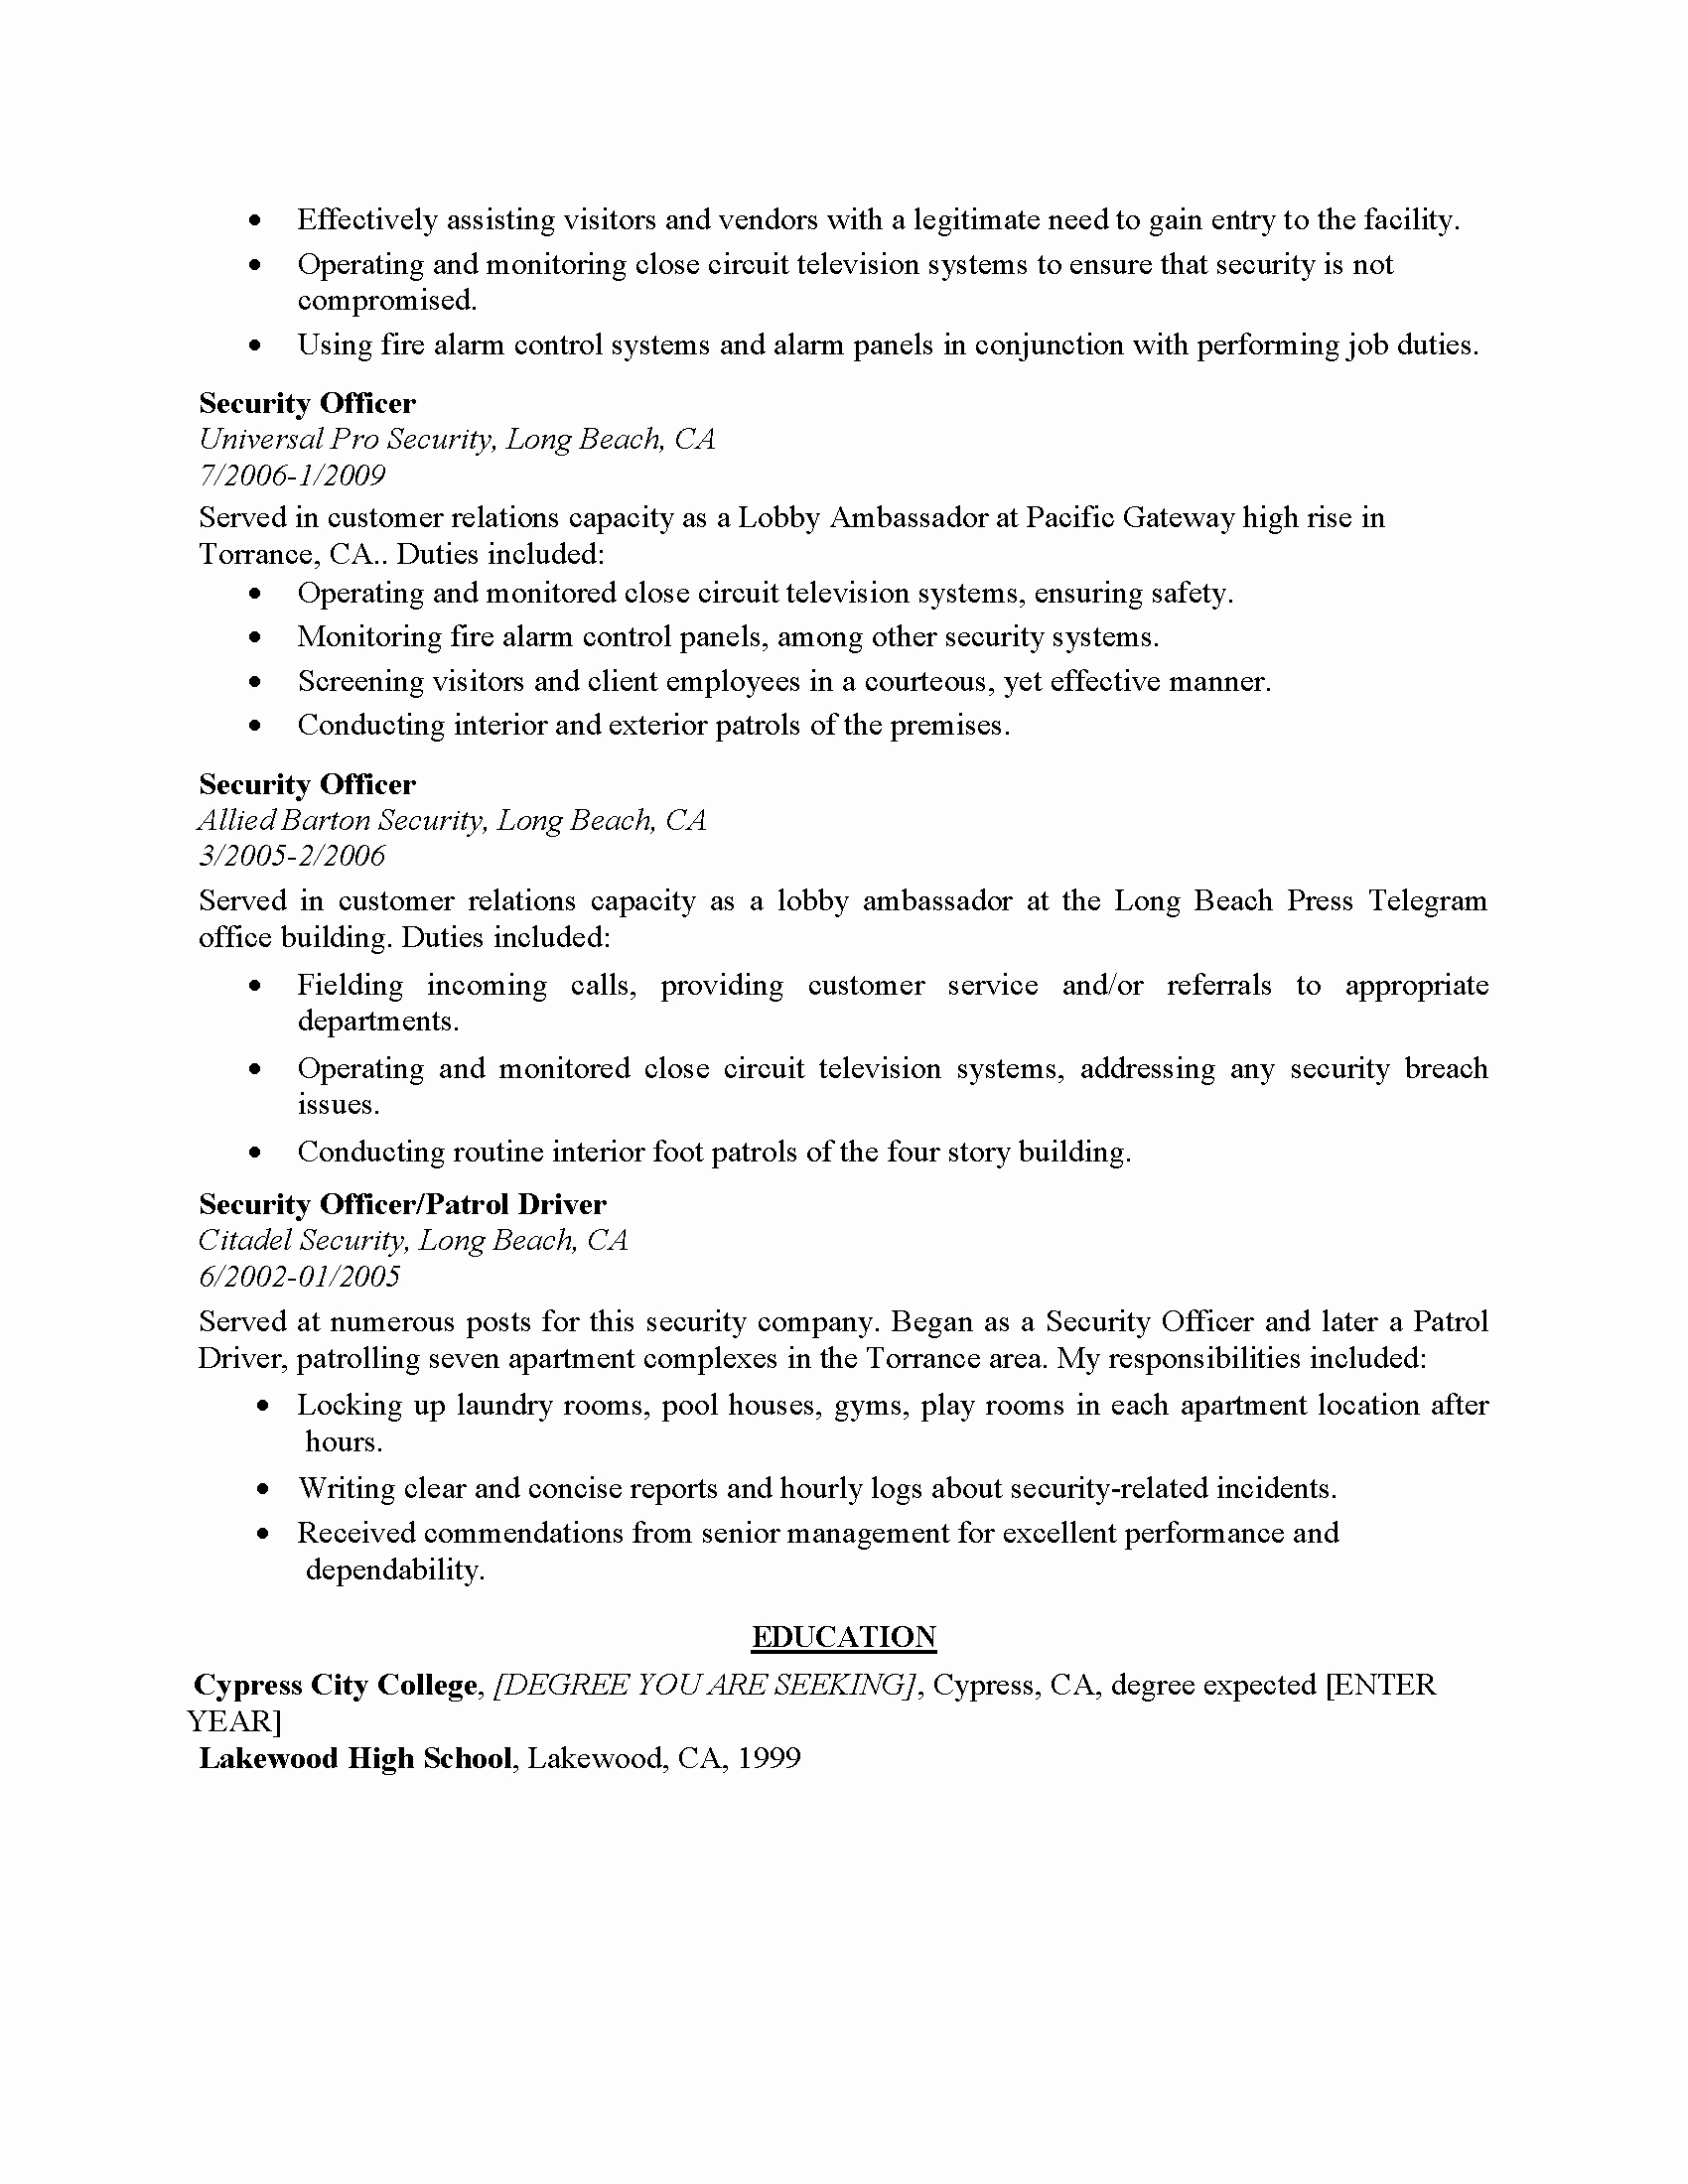 Resume Examples for Entry Level Customer Service